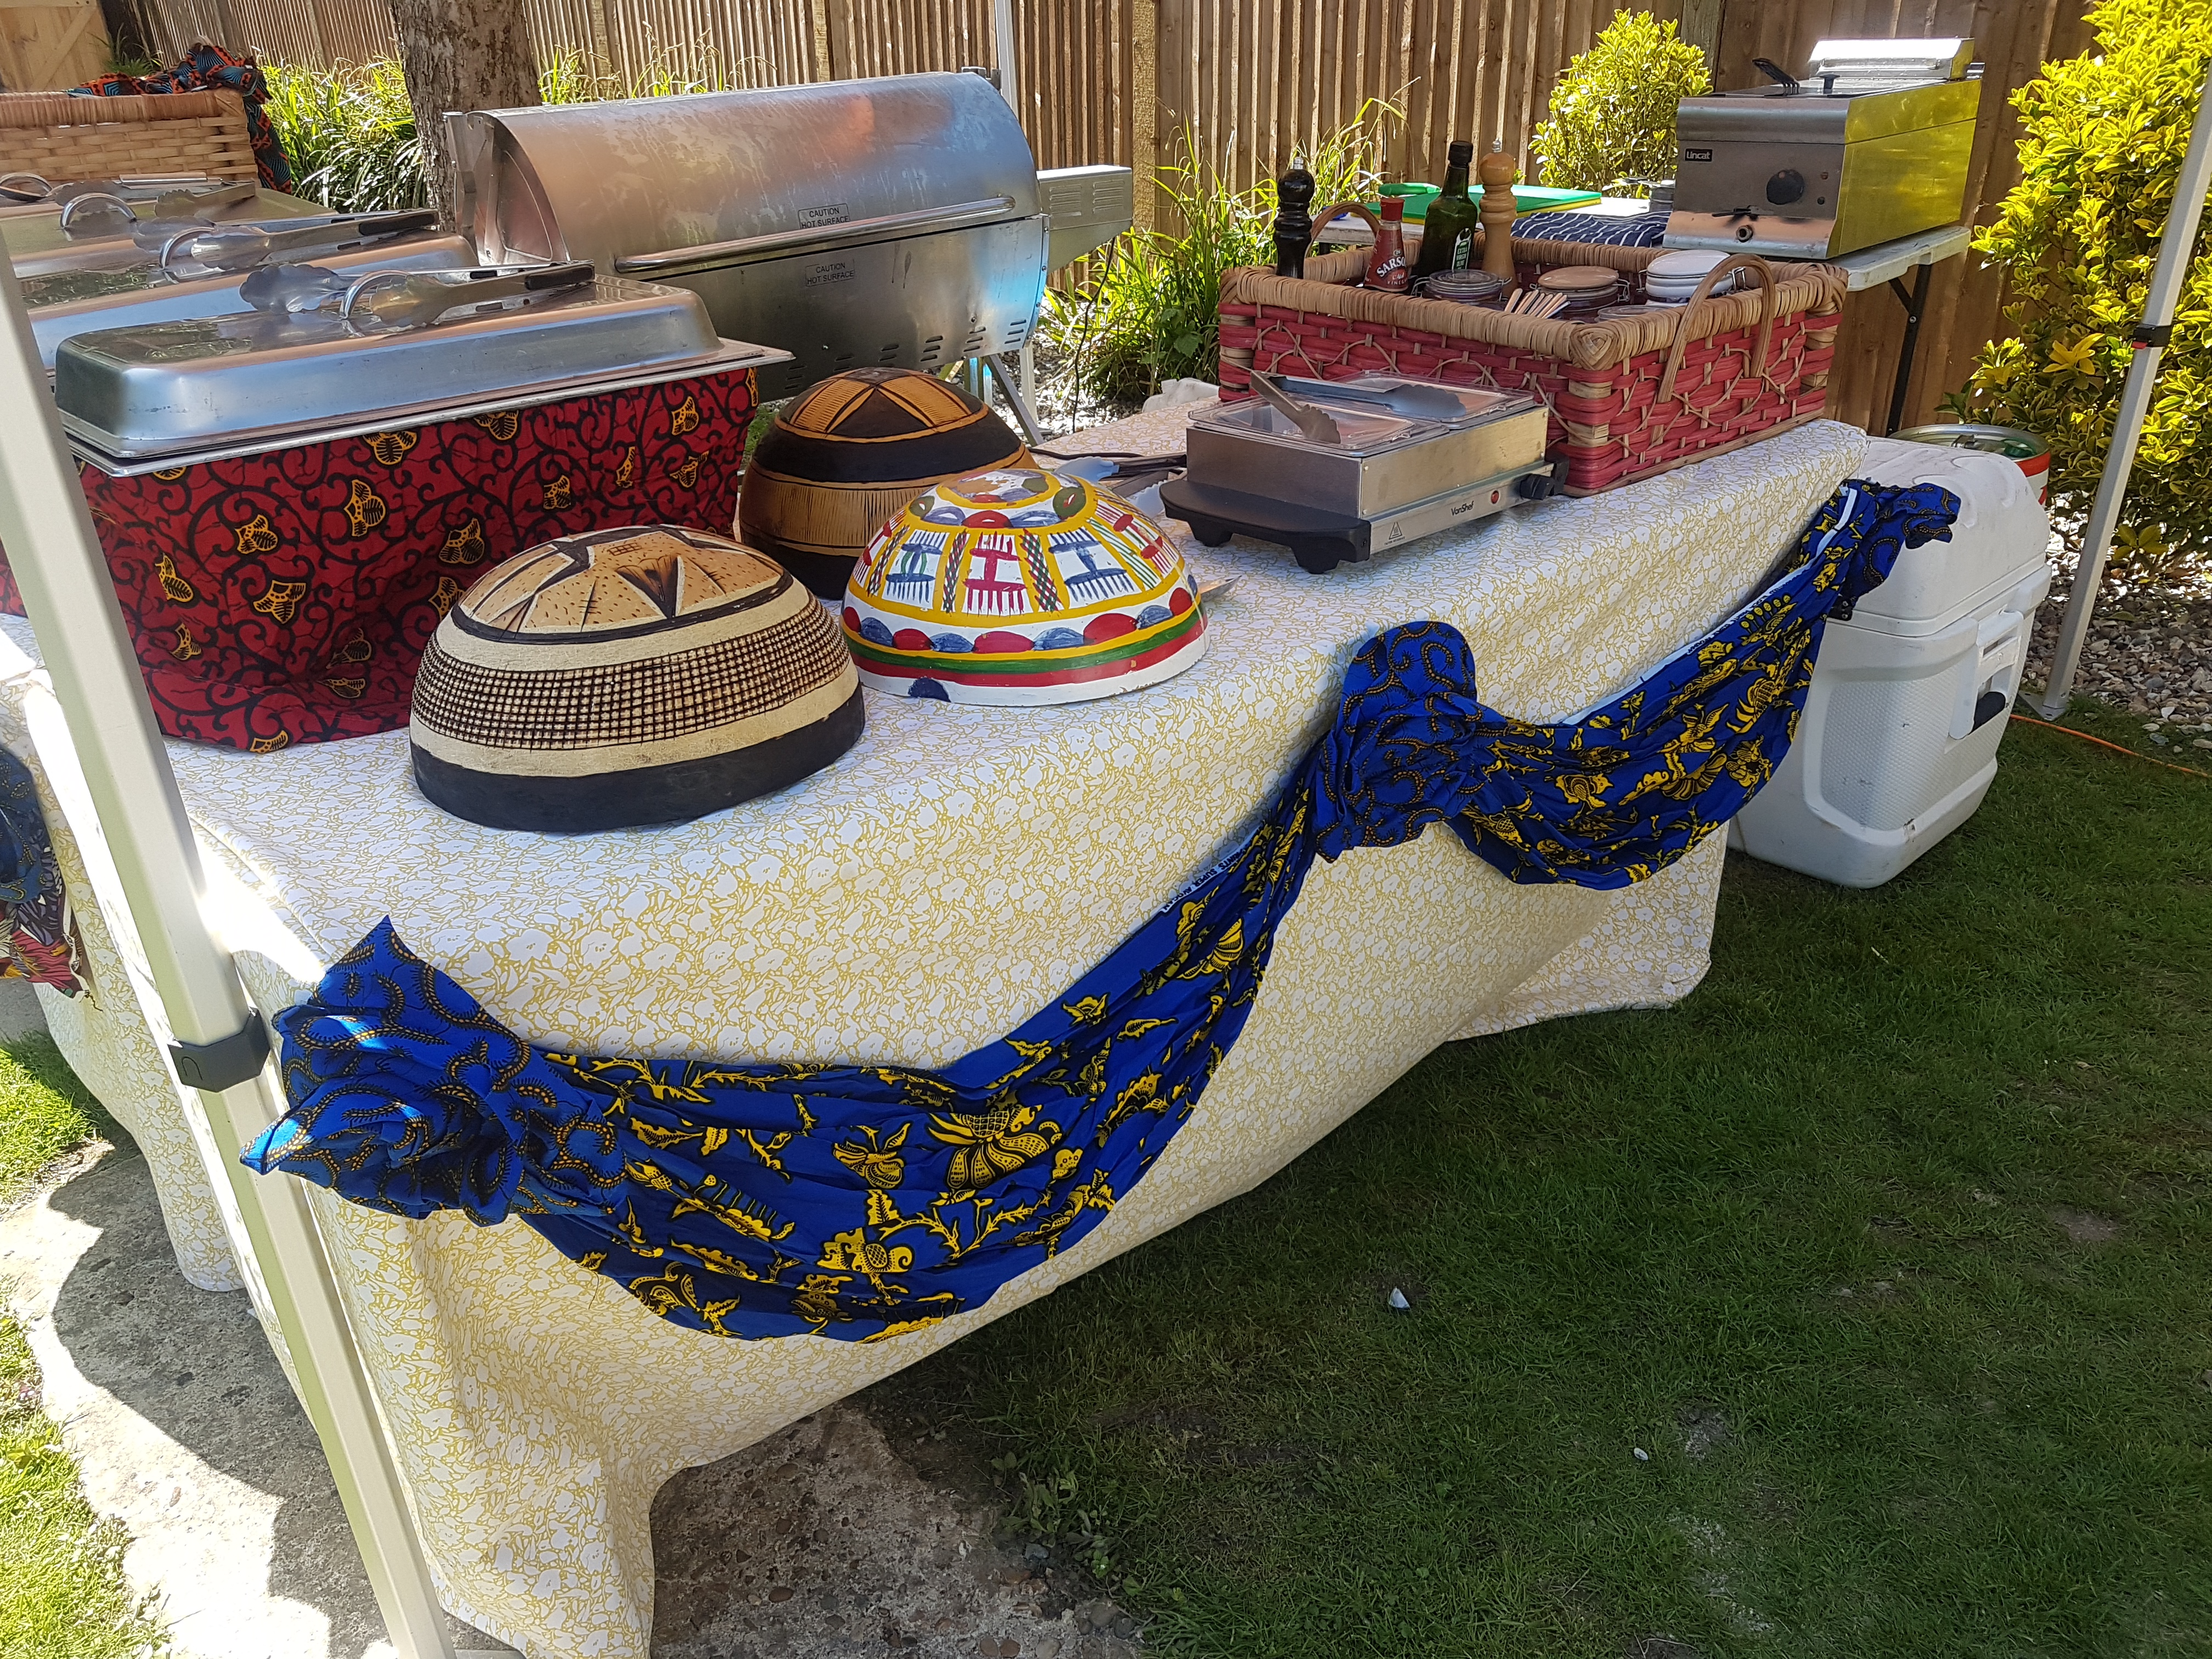 Helen's HOG ROAST PARTY 5/5/2018